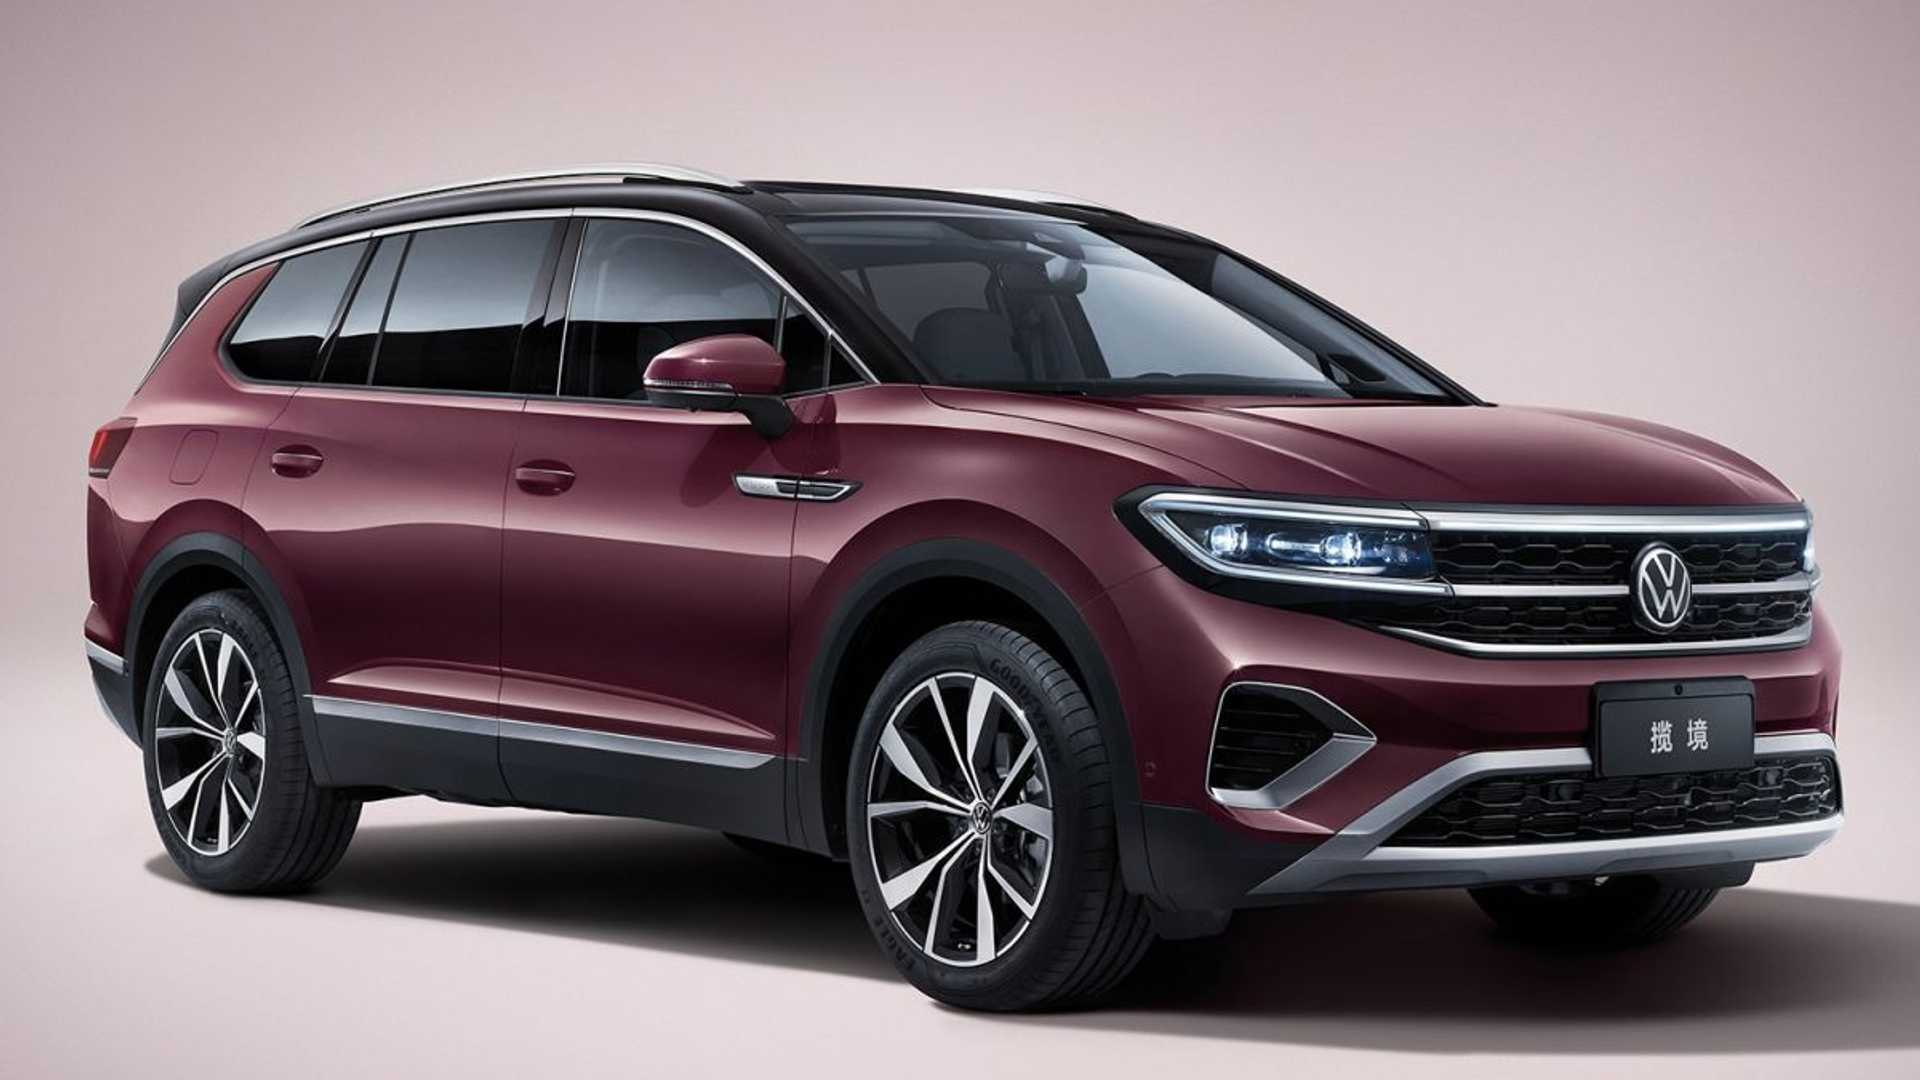 2021 Volkswagen Talagon Revealed As Massive SUV With V6 Power